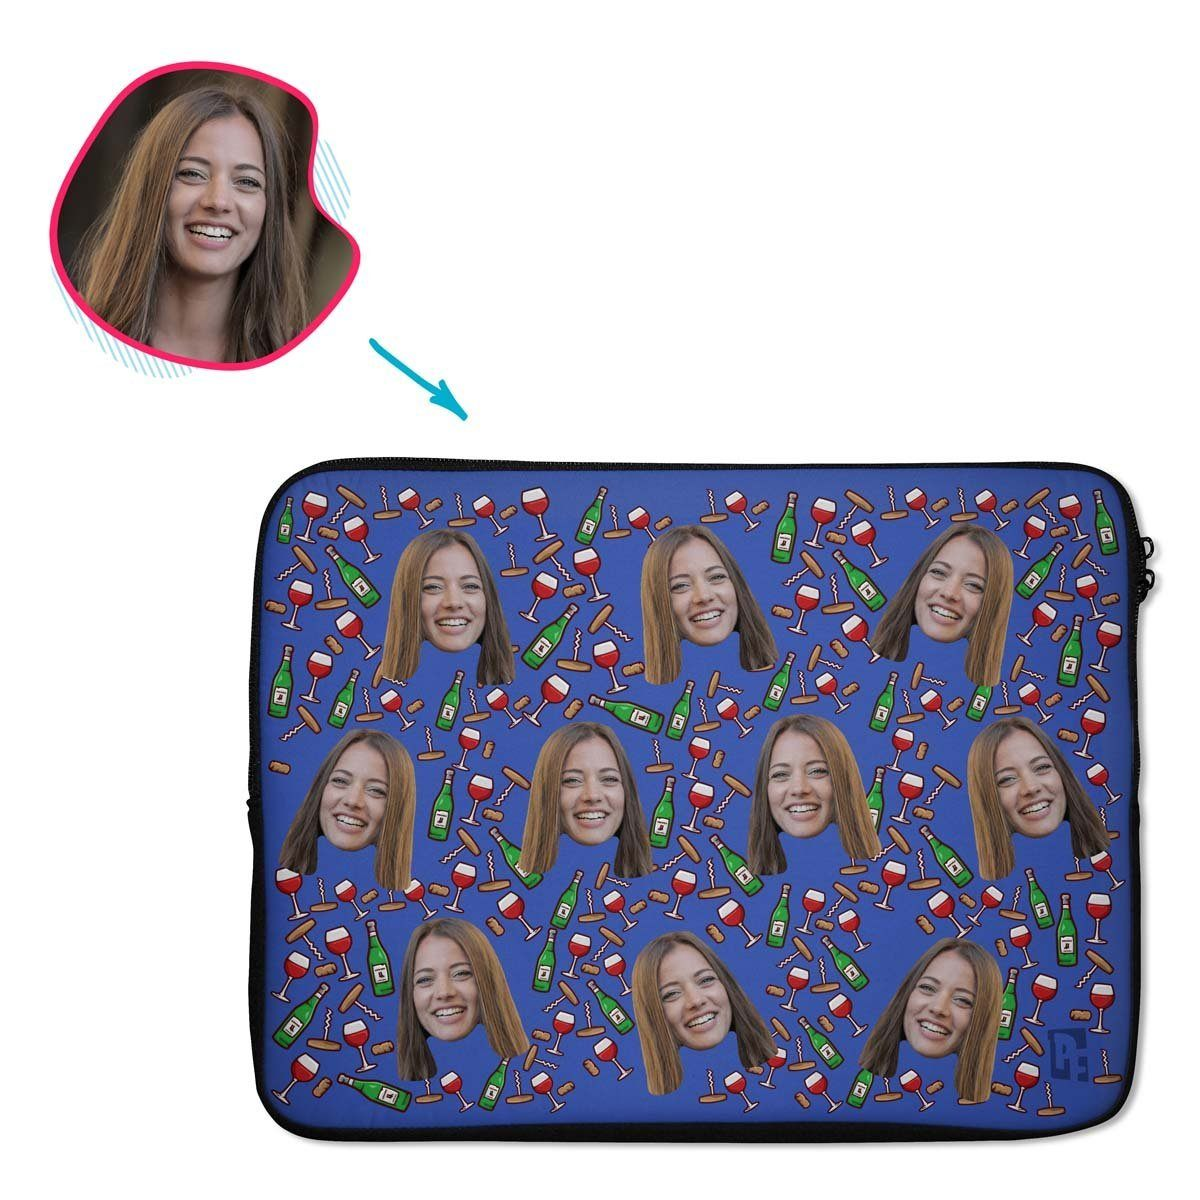 darkblue Wine laptop sleeve personalized with photo of face printed on them